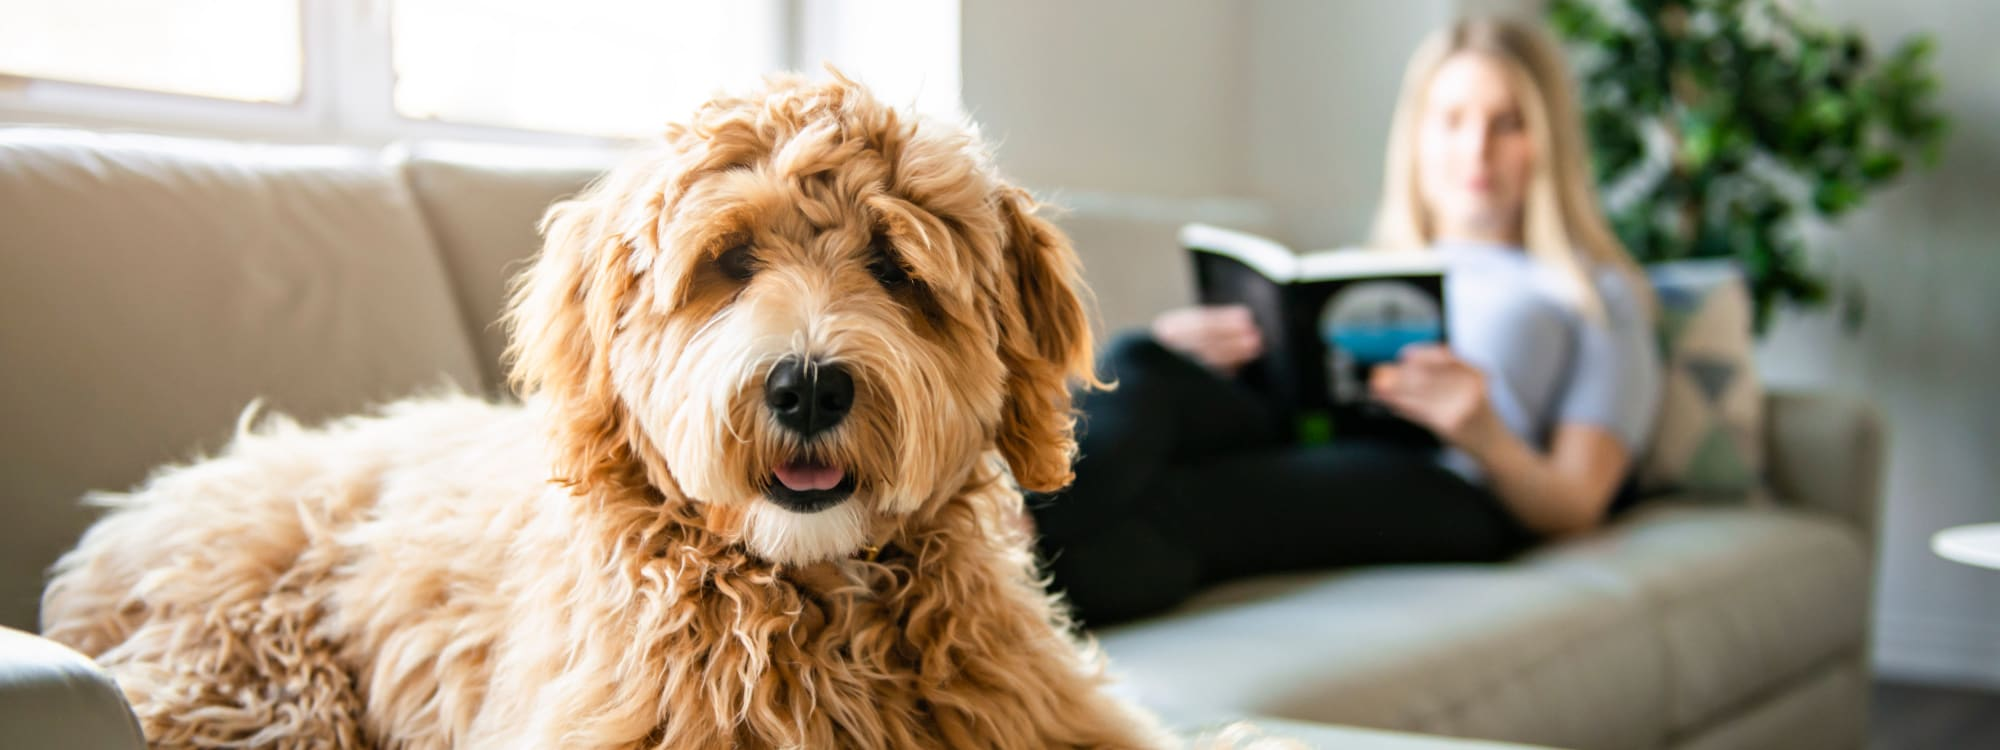 Prairie Shores's pet policy in Chicago, Illinois